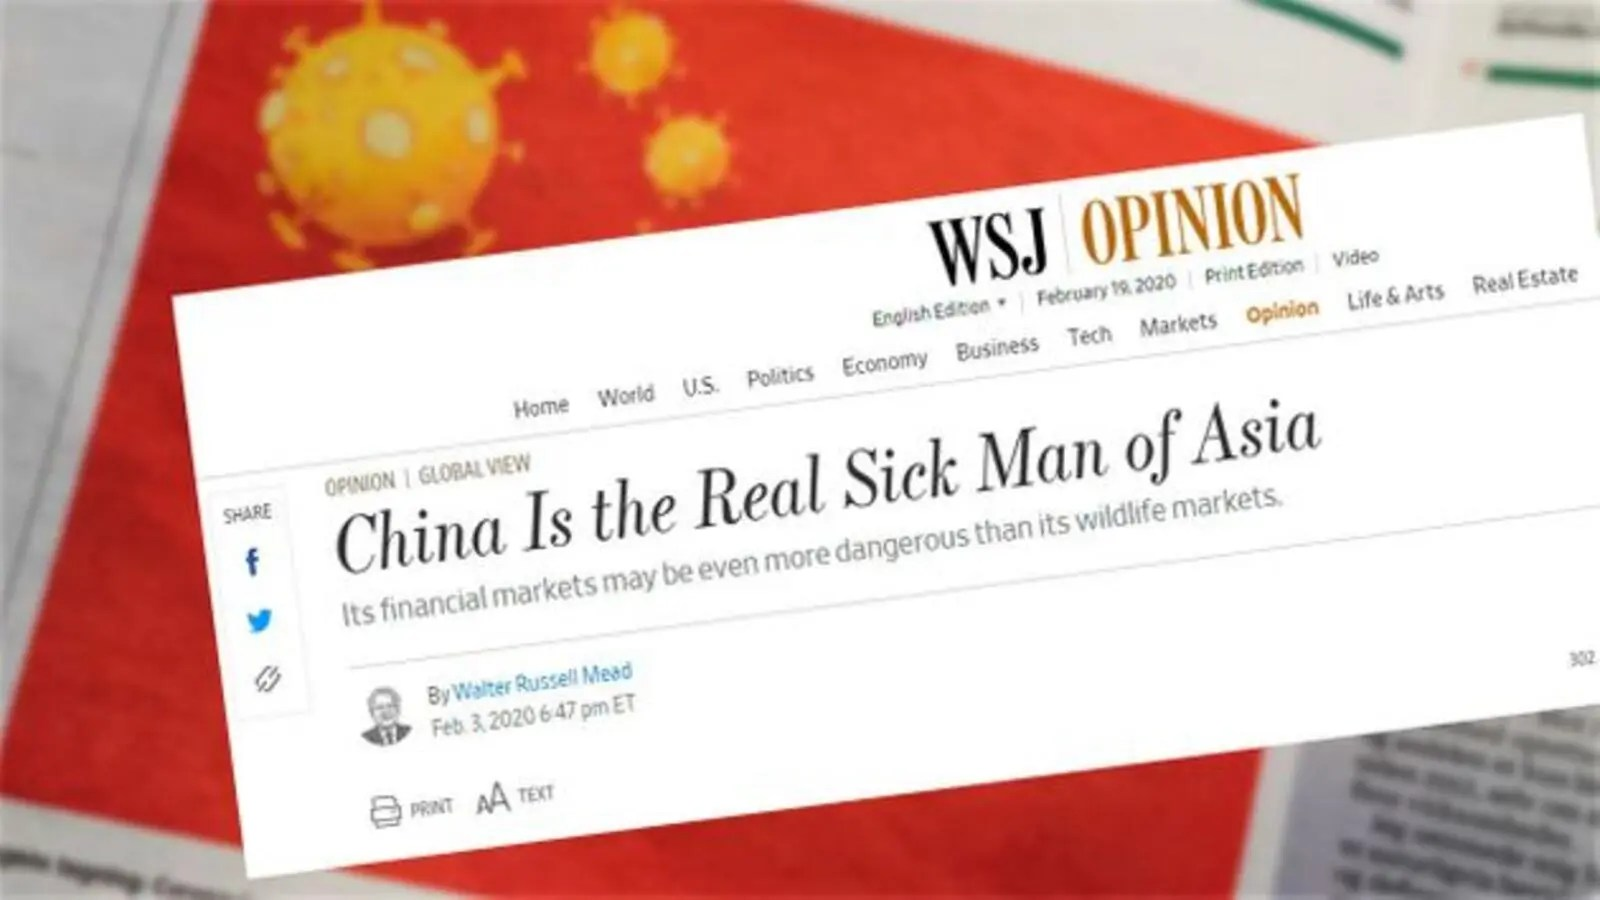 'The Real Sick Man of Asia': China Expels 3 Wall Street Journal Reporters | Al Bawaba